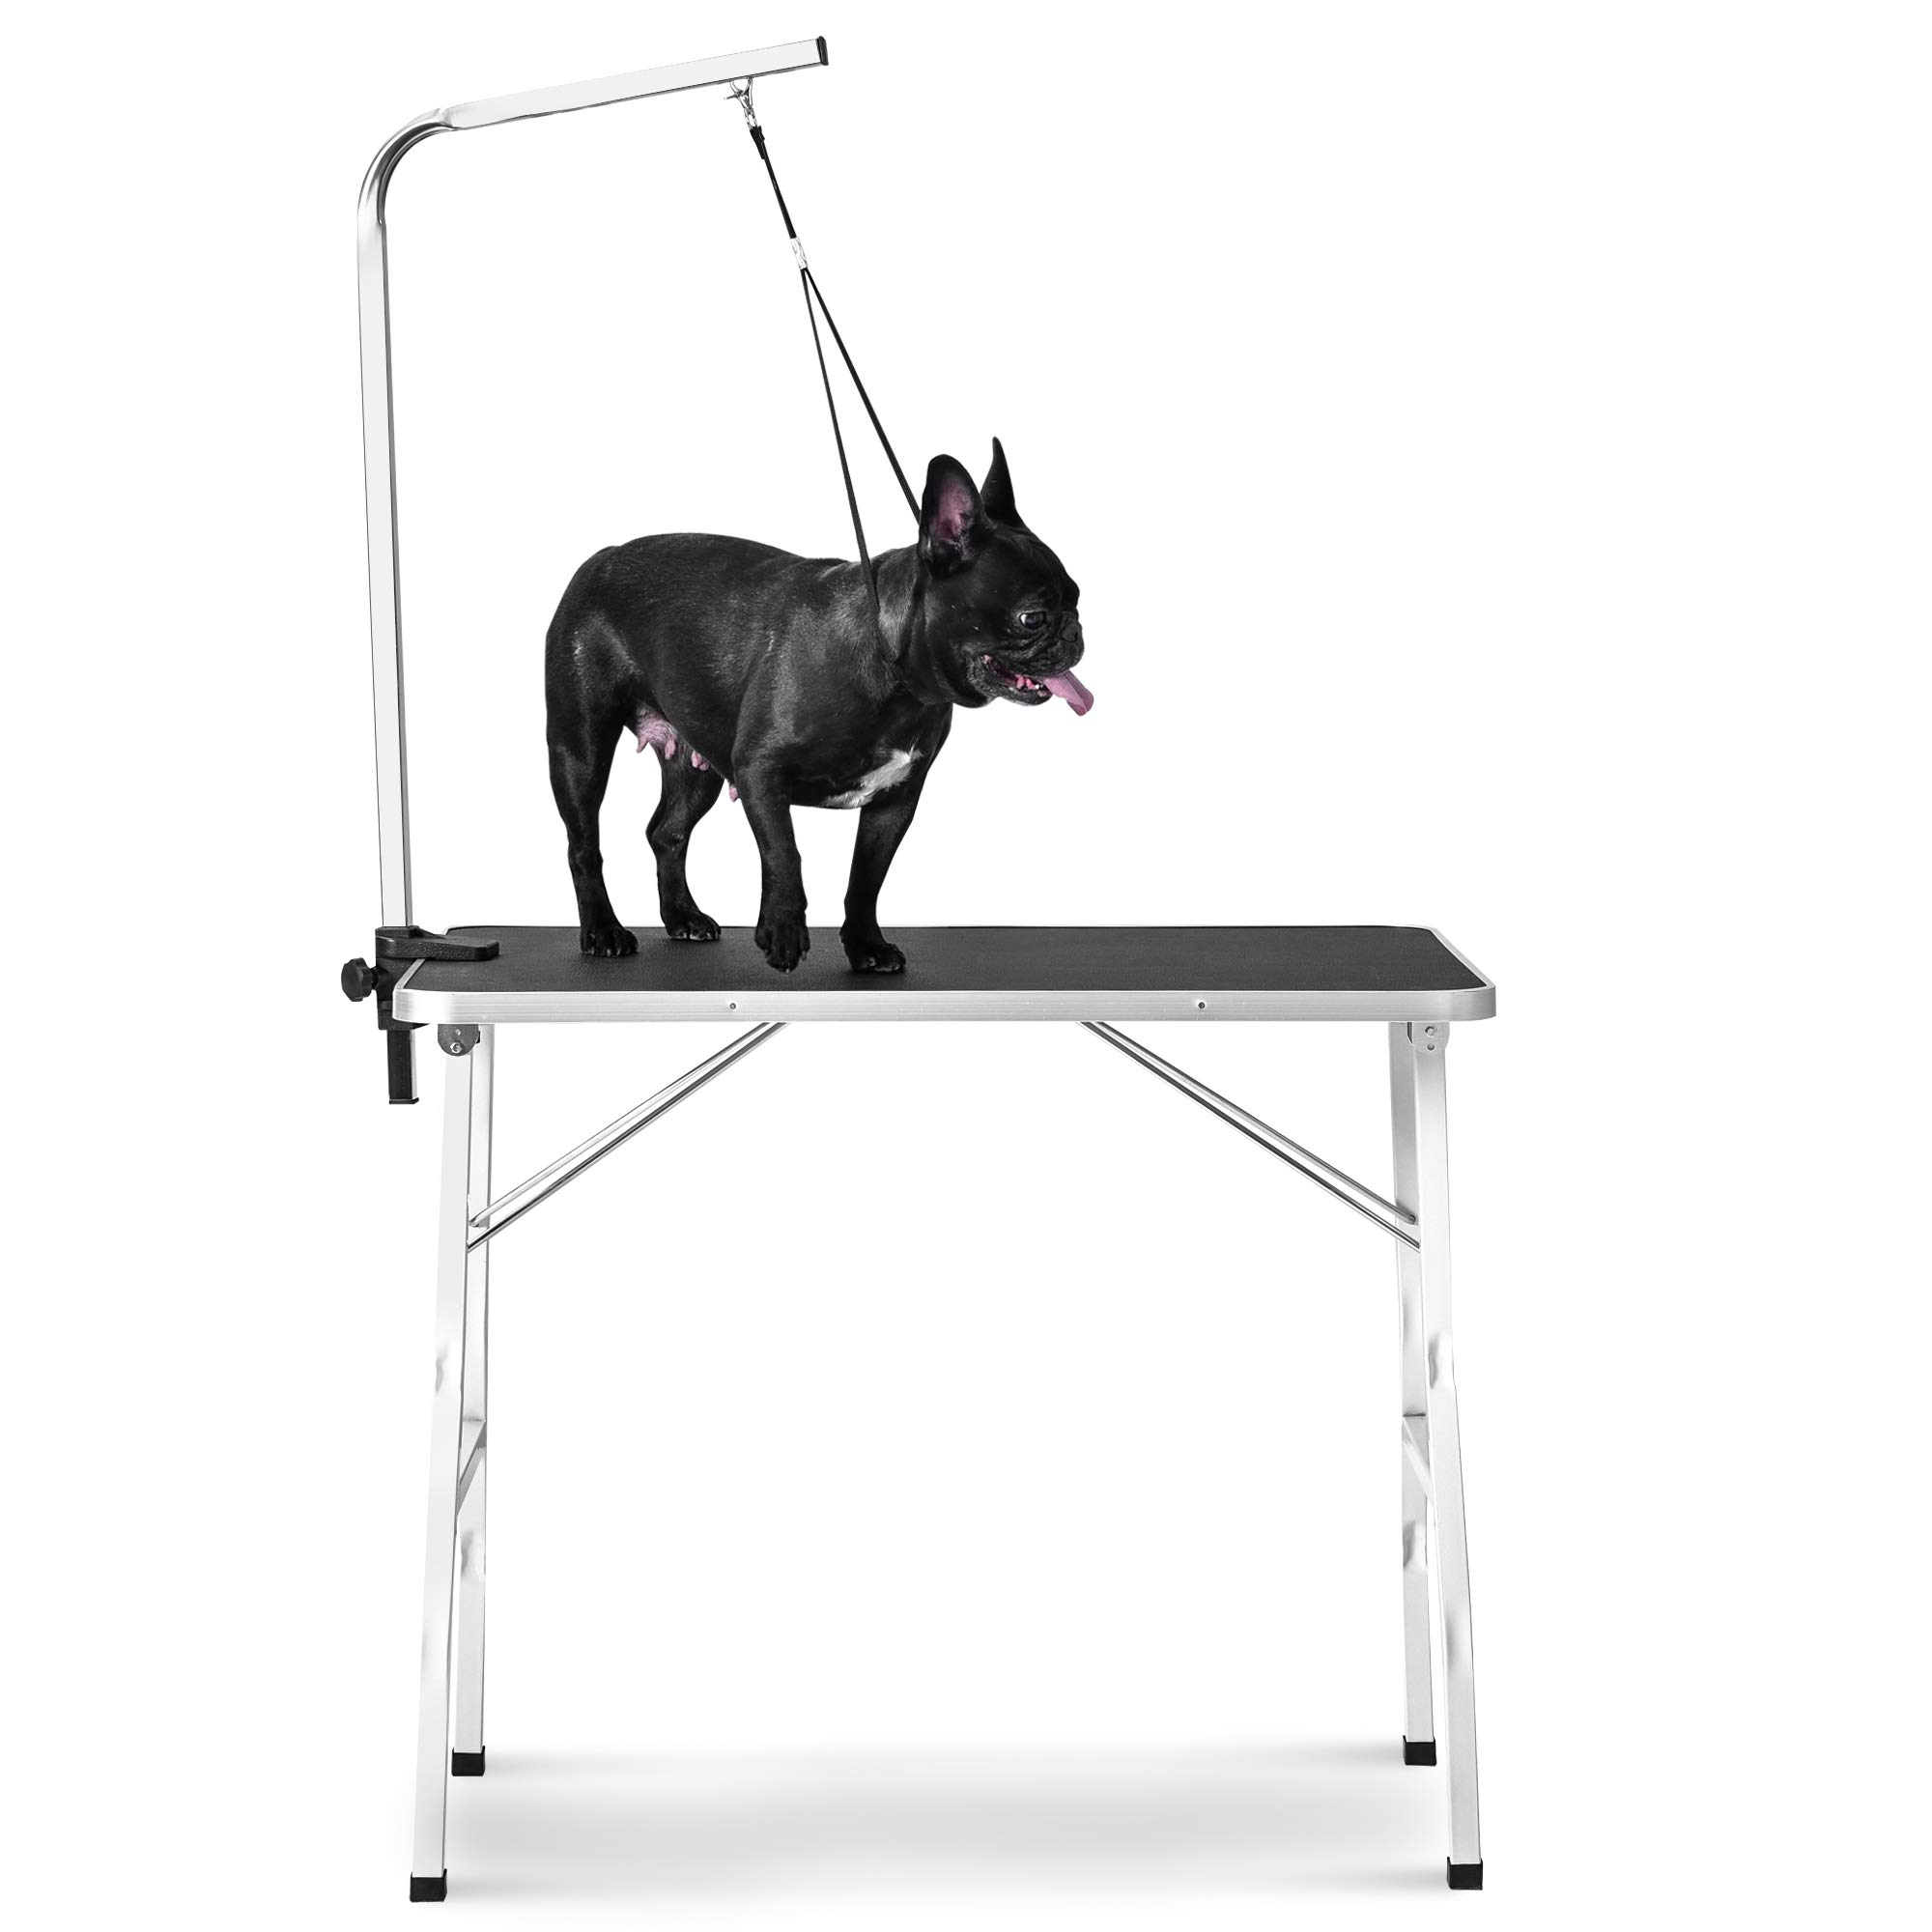 Rhomtree 30'' Foldable Pet Grooming Table with Adjustable Grooming Arm for Small Dog Durable Heavy Duty (30 inch) by Rhomtree